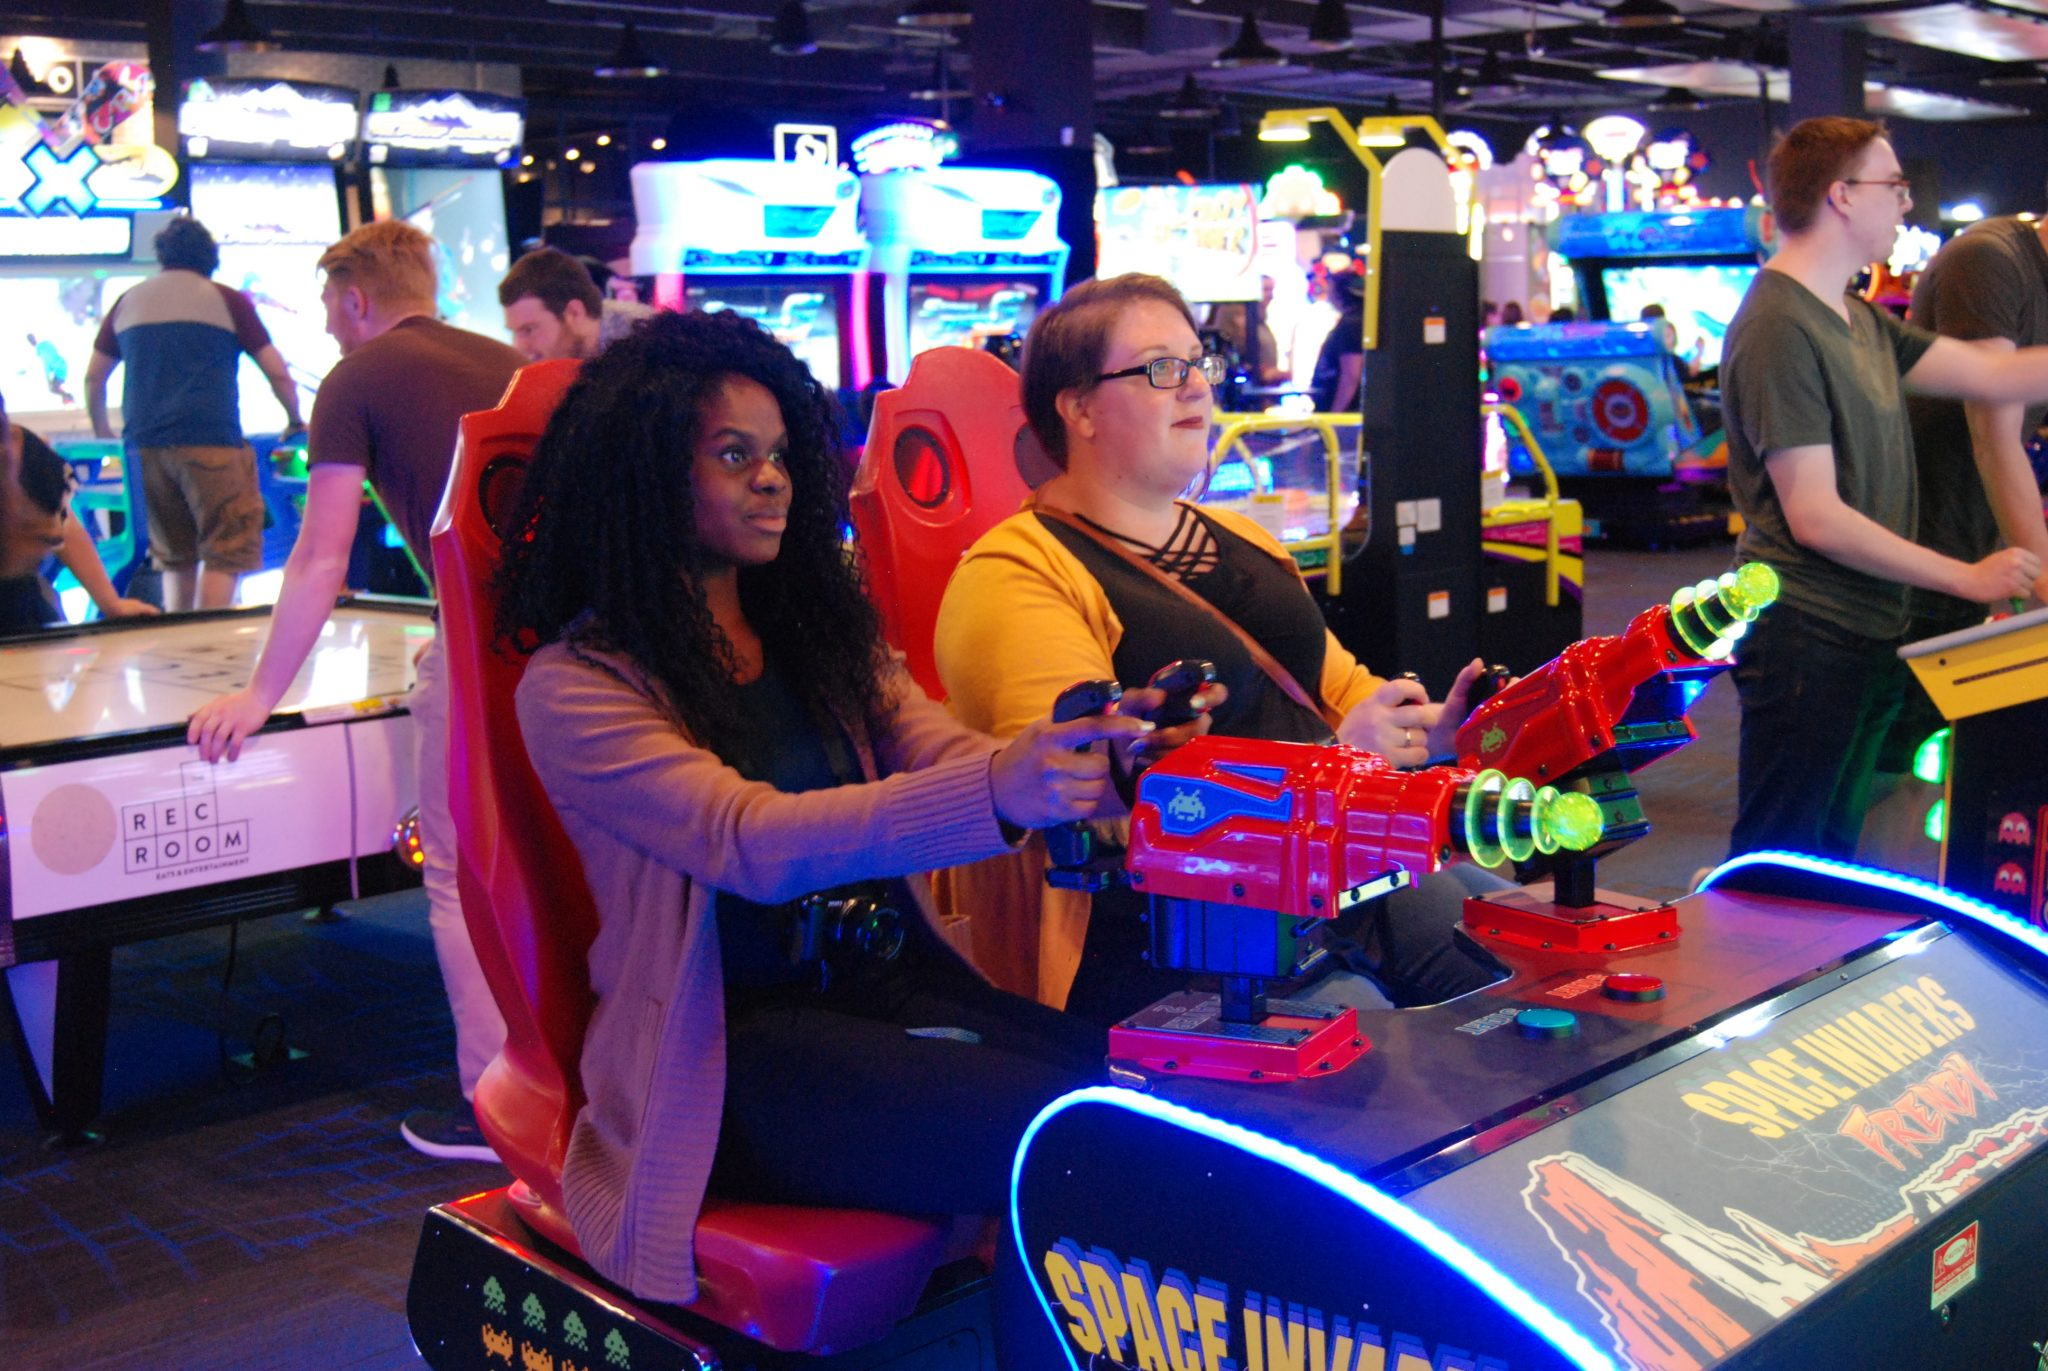 """Satisfy your hunger for gaming at the Rec Room. Dishan Anderson and Laura Thorne playing """"Space Invaders Frenzy"""" at the Rec Room in London, Ontario."""